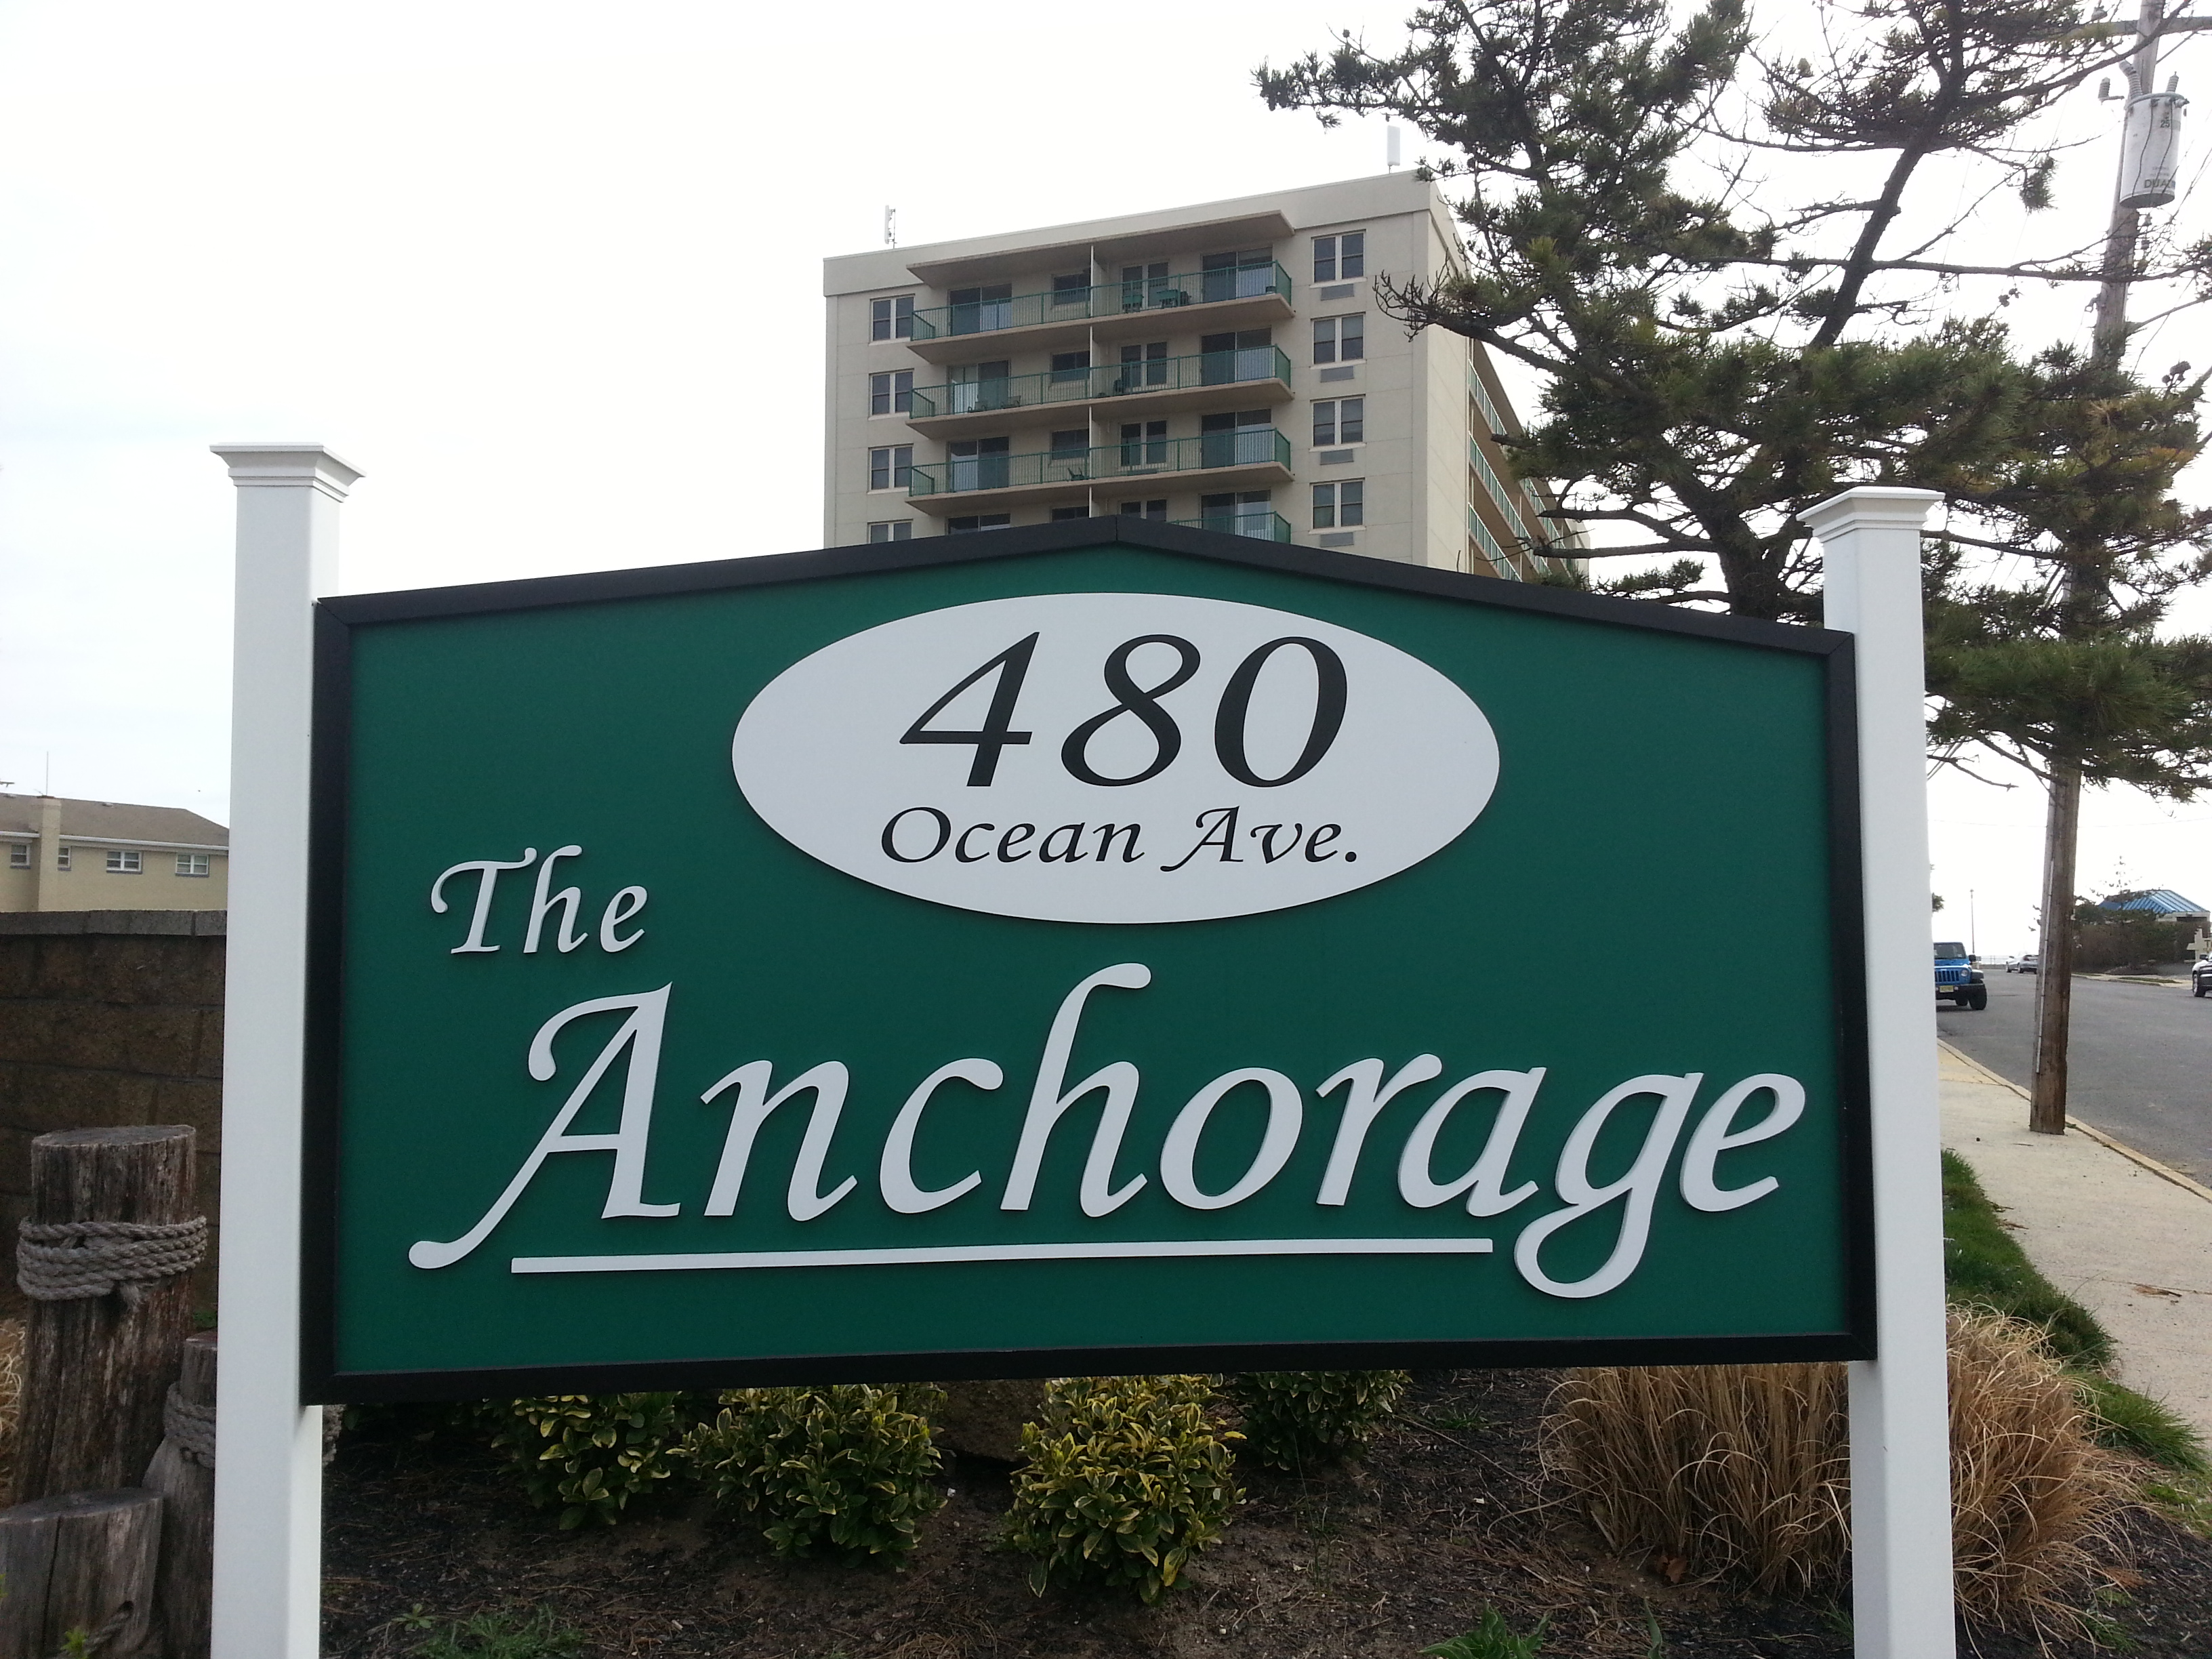 The Anchorage condominium is located on the Long Branch boardwalk in the West End section of town.